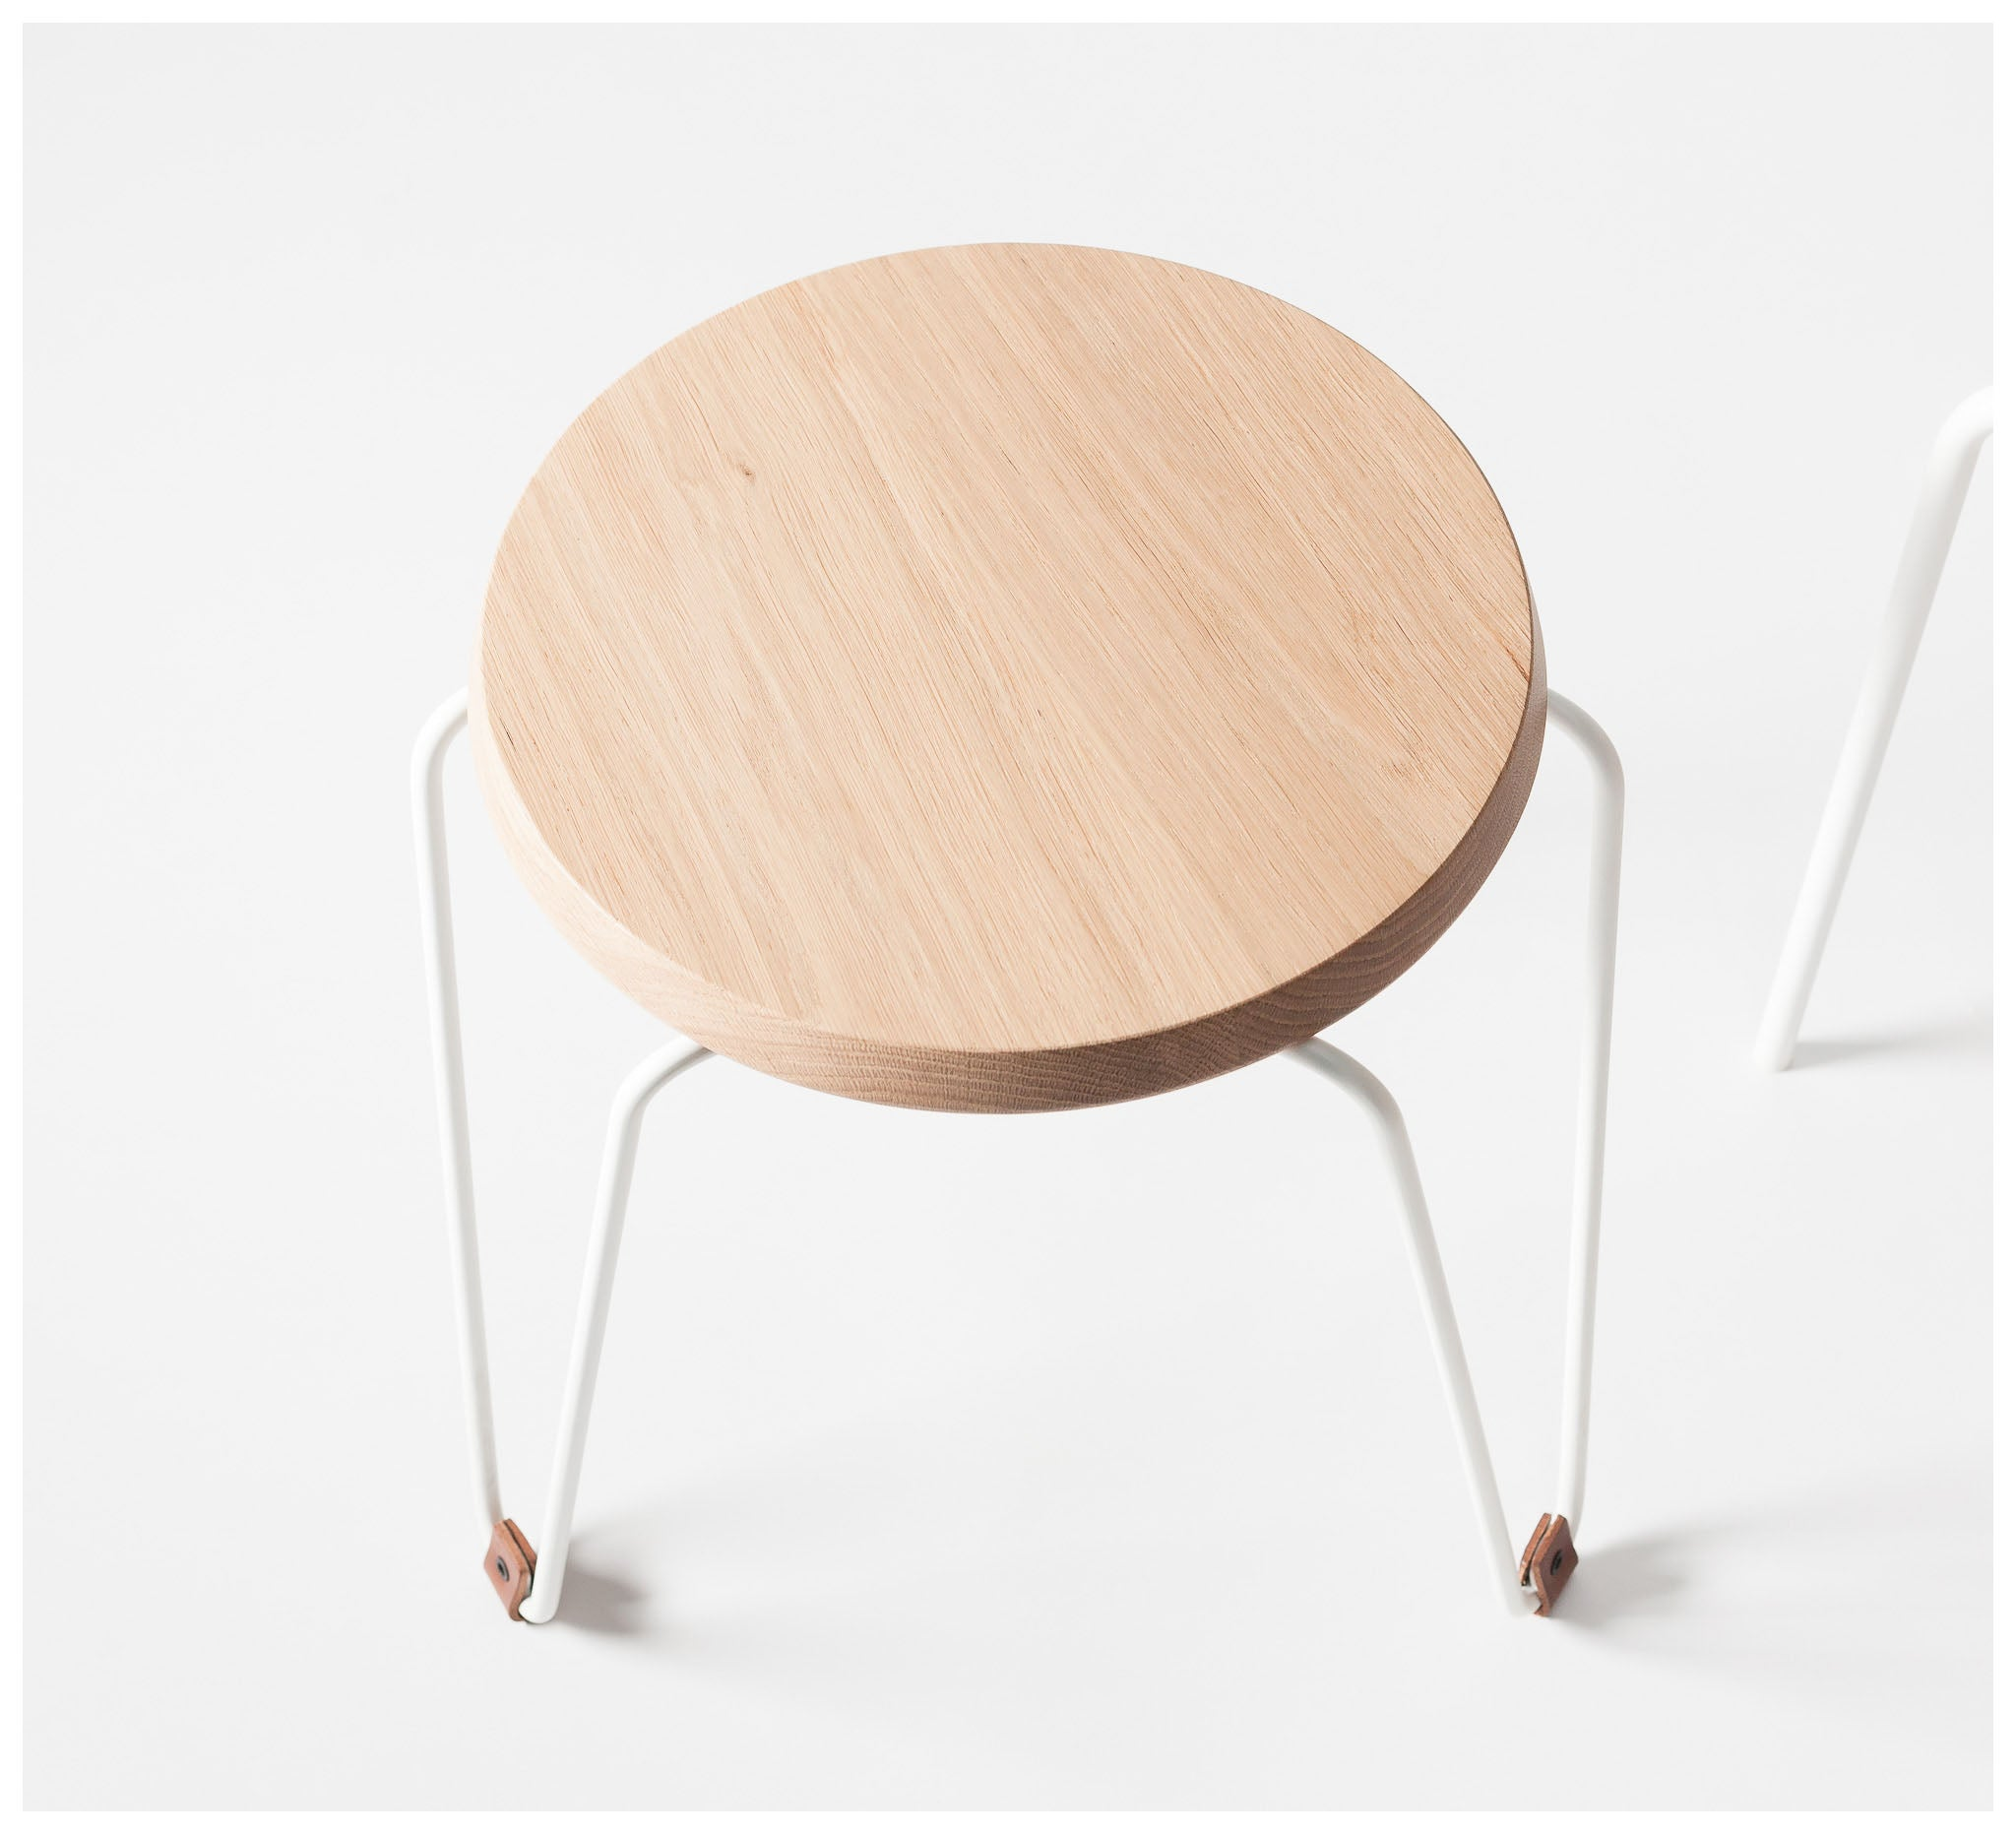 Tuckbox Design - Klein Lozenge Stool - Matte White Mild Steel and Timber